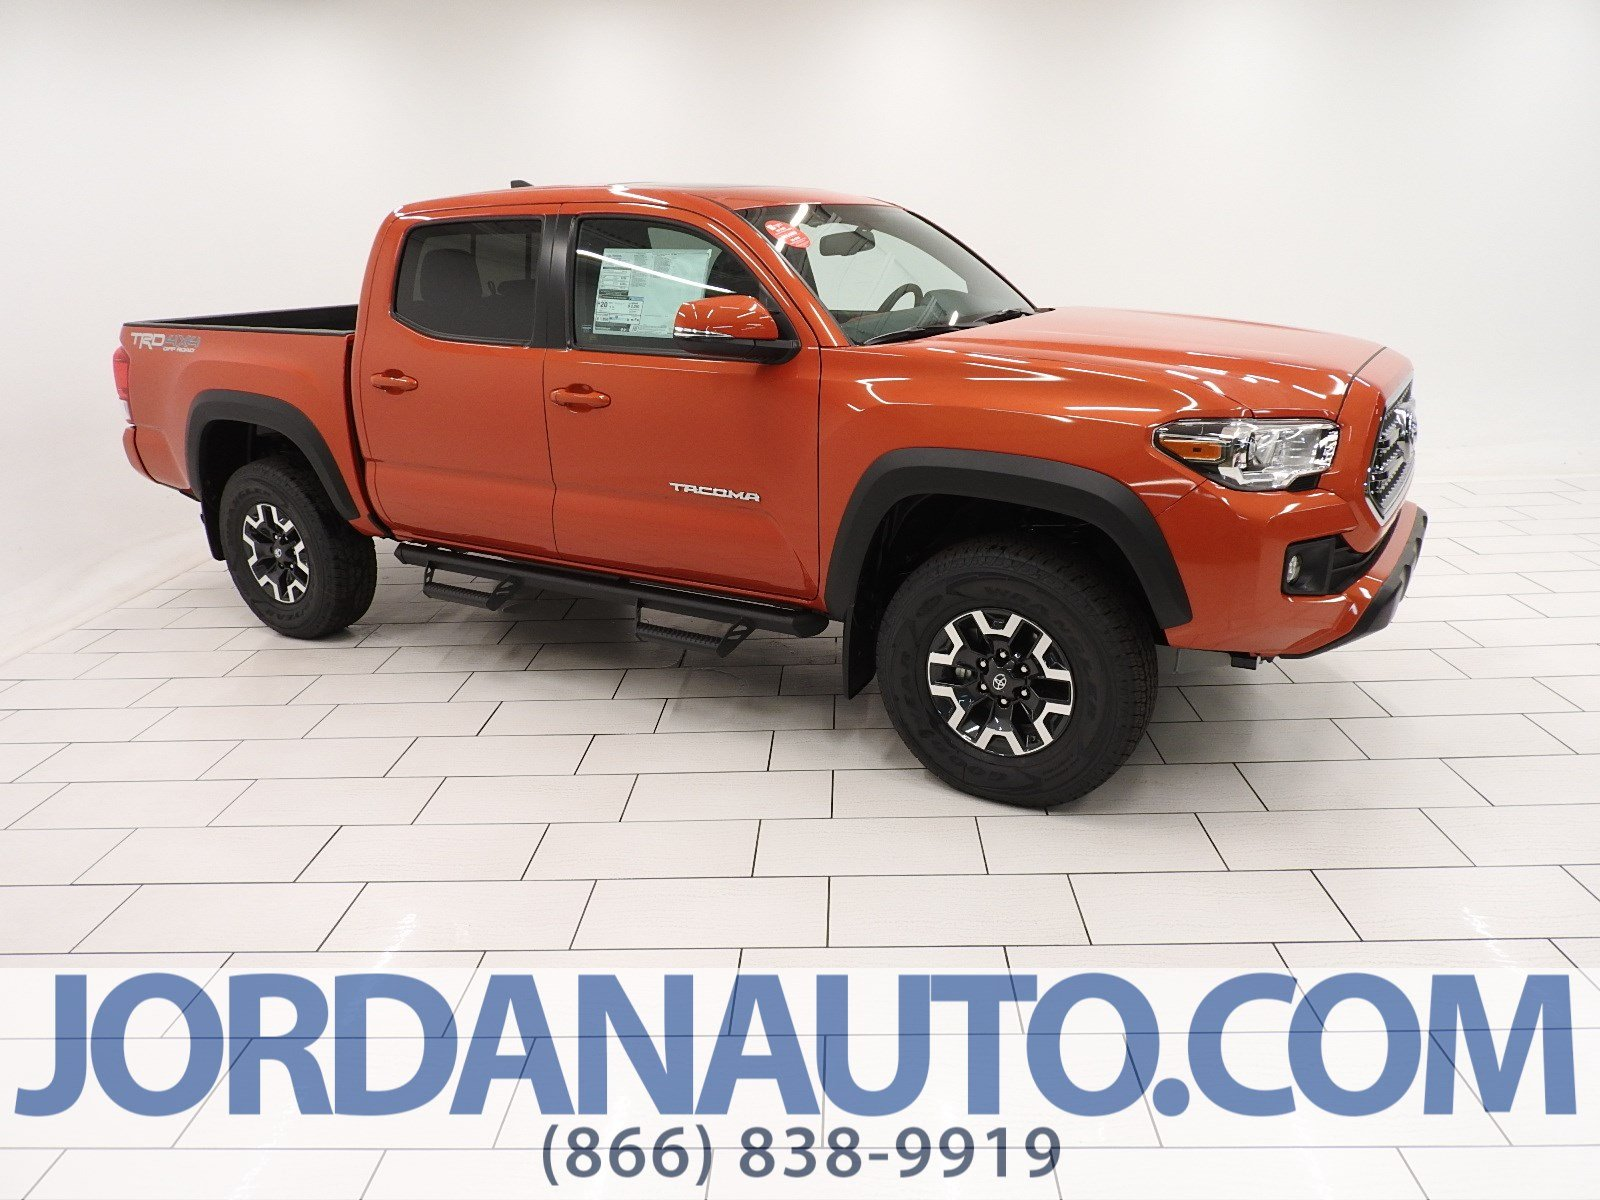 New 2017 Toyota Ta a TRD f Road Double Cab in Mishawaka